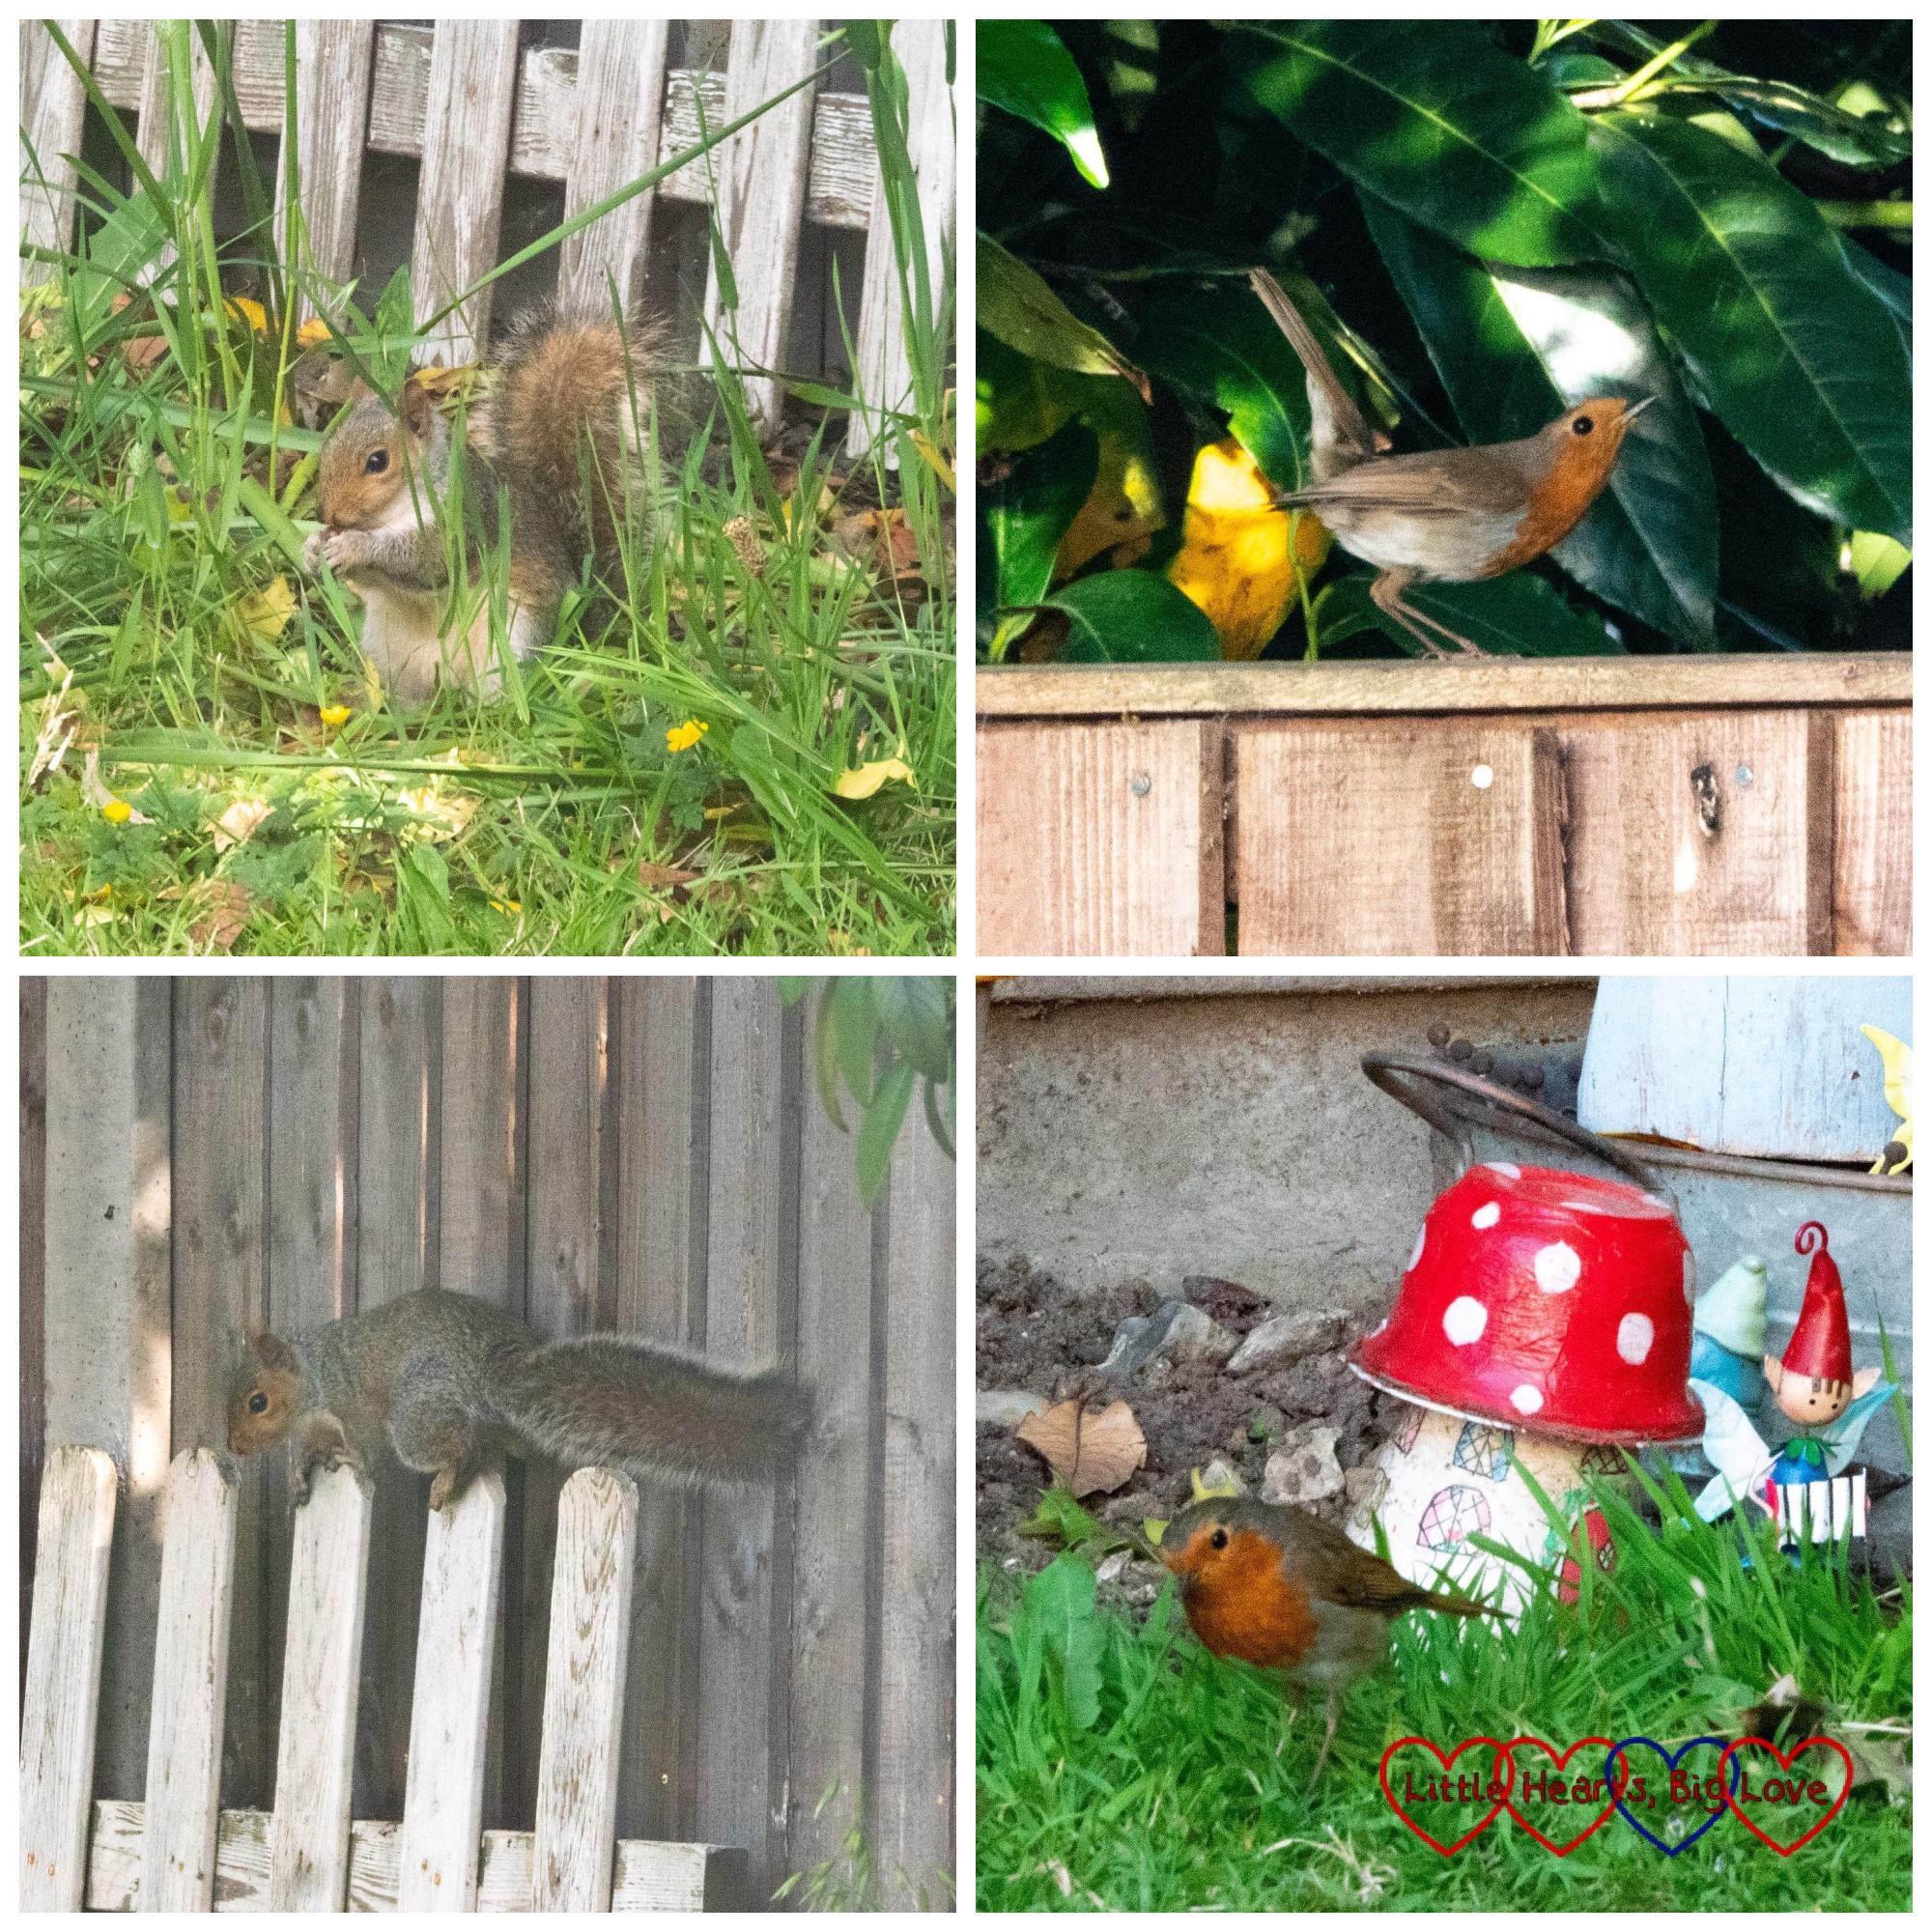 A squirrel and a robin in the garden